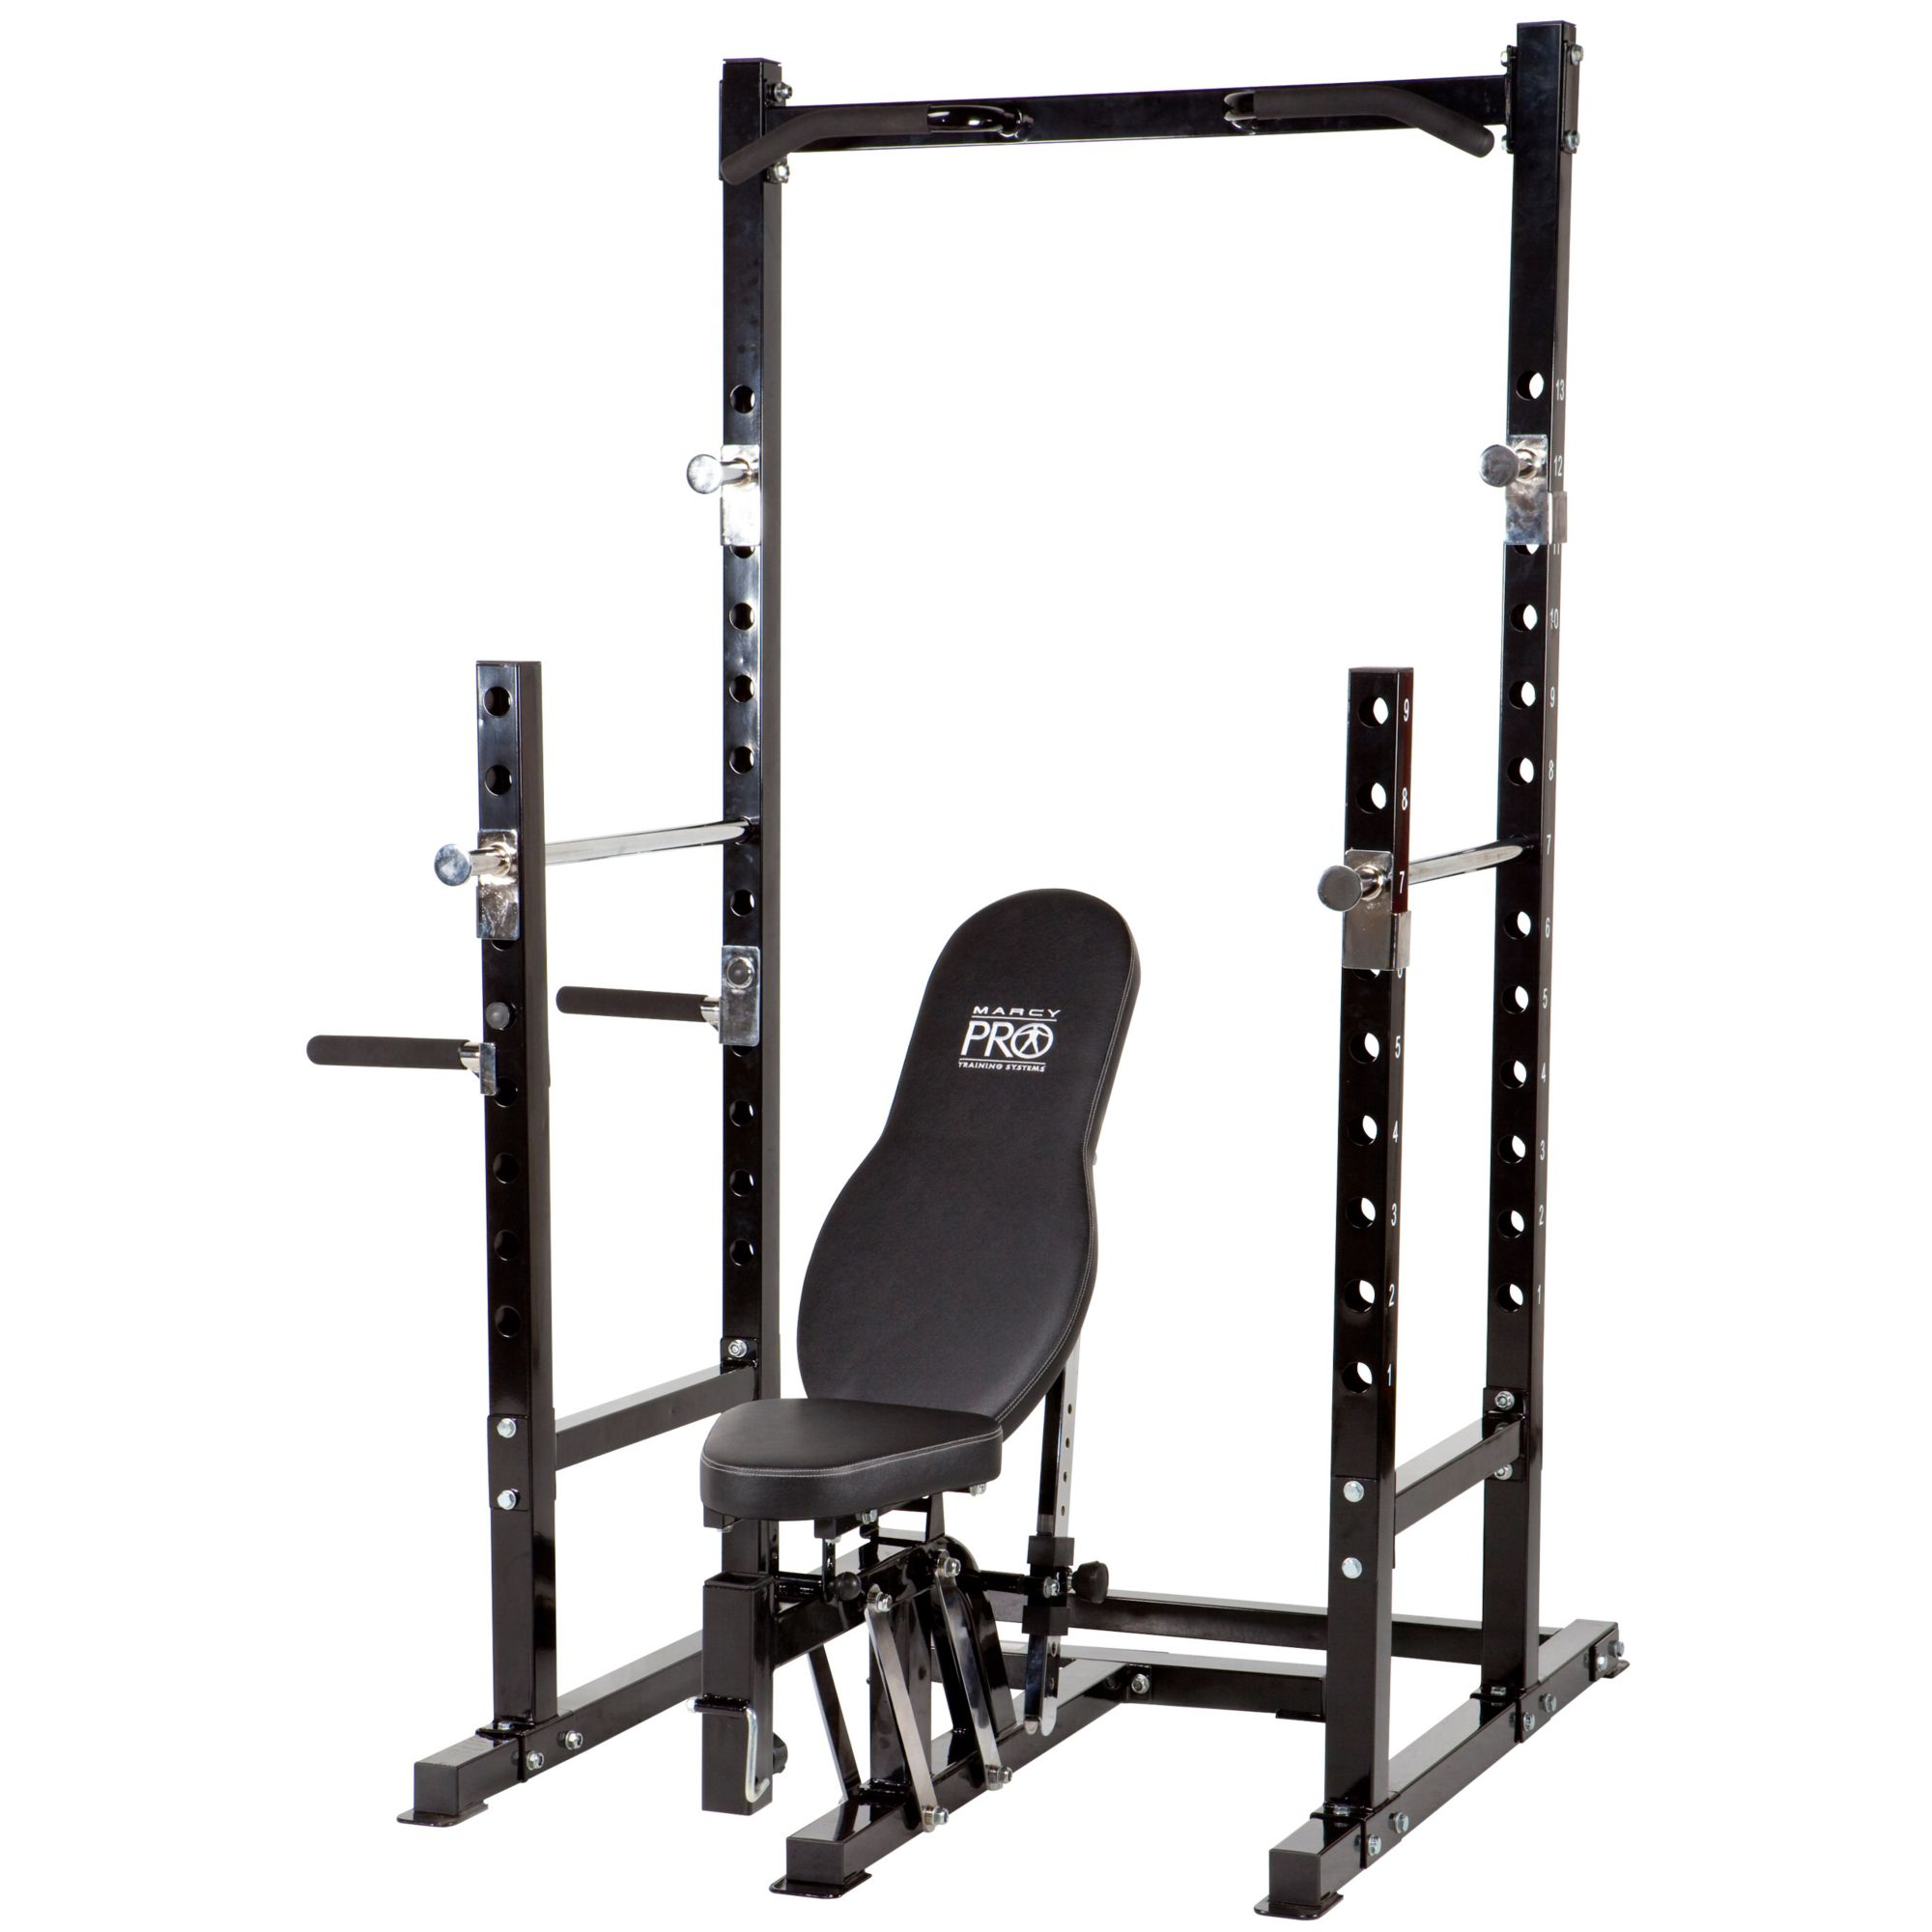 duty is bench powergym cage bar rack weights product fitness gyn heavy a what commercial olympic power